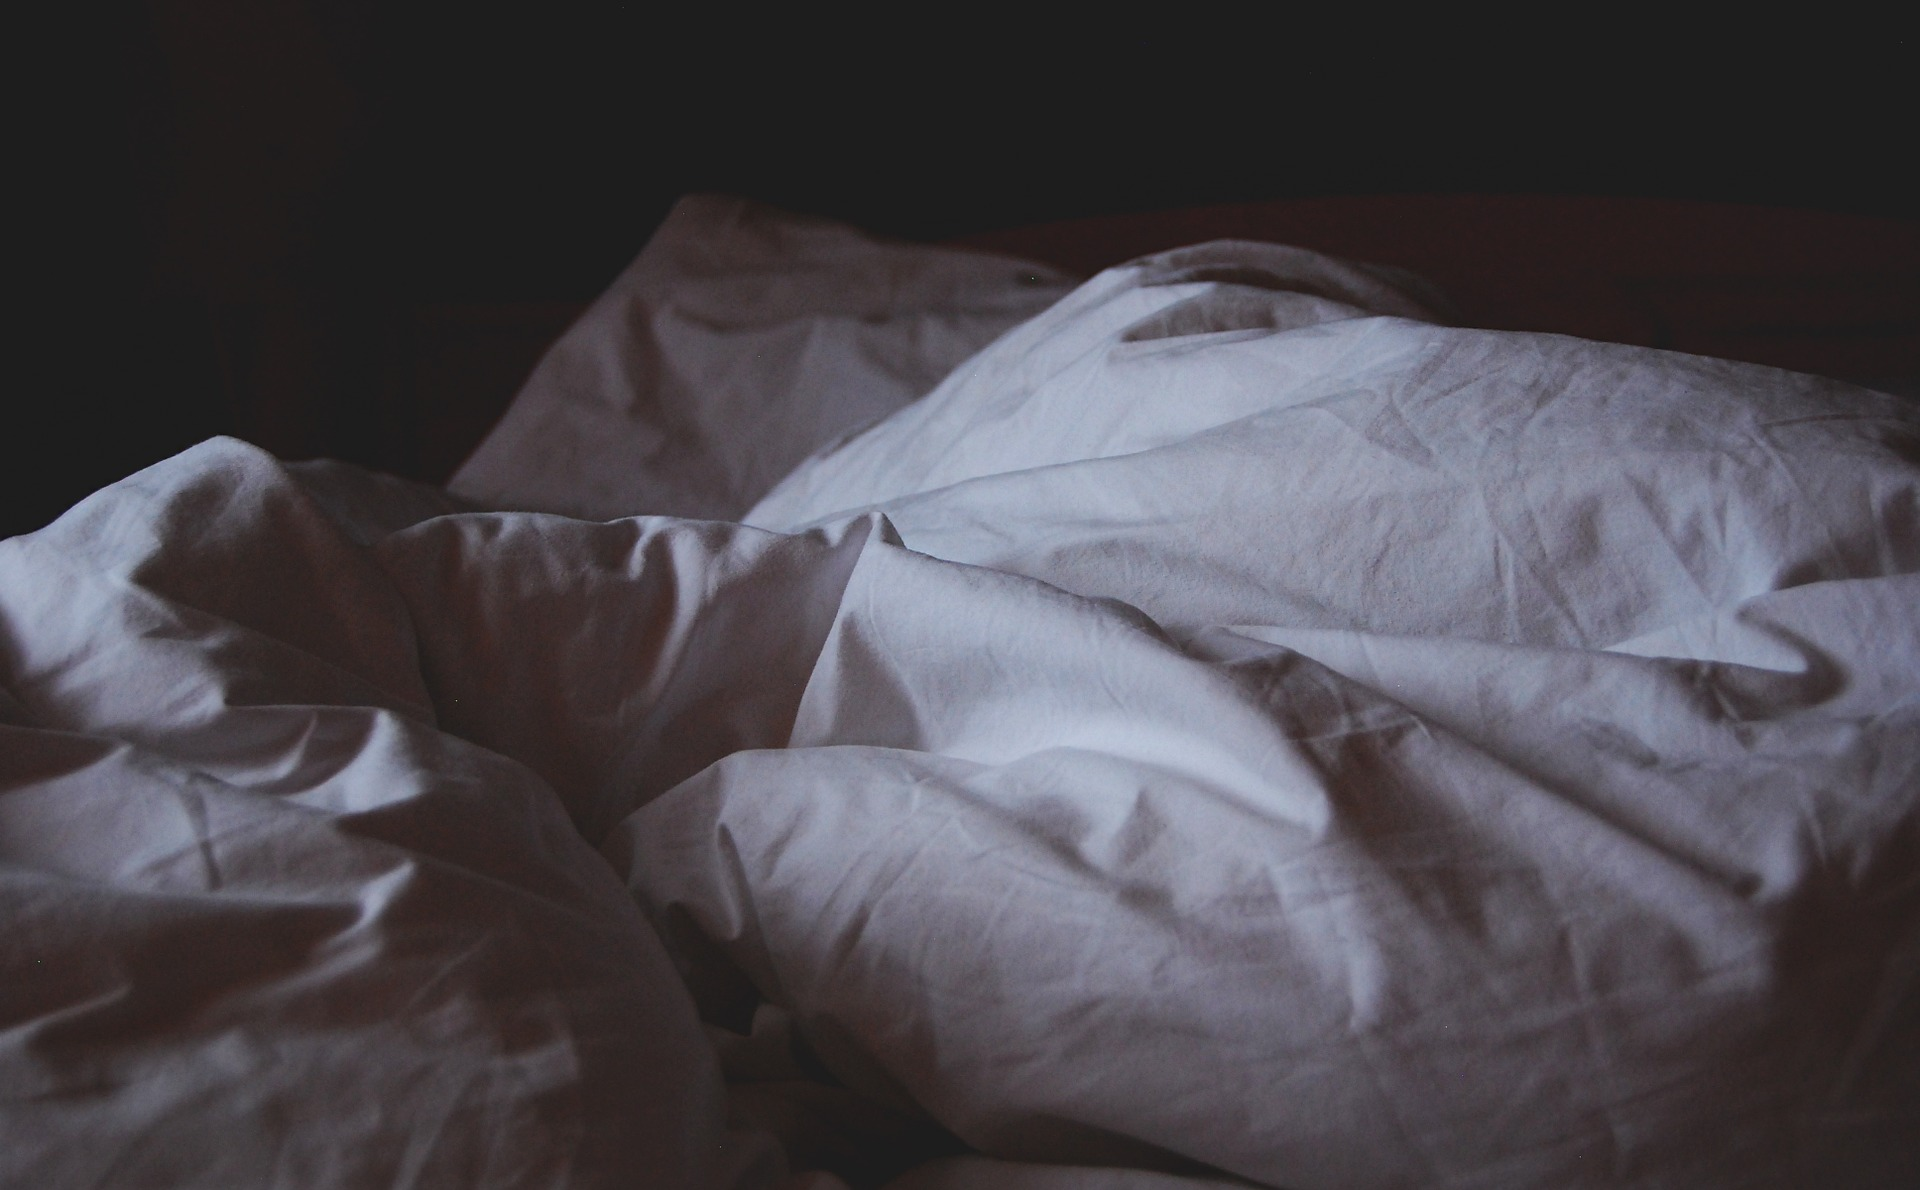 an unmade bed with a white quilt in a dim room.